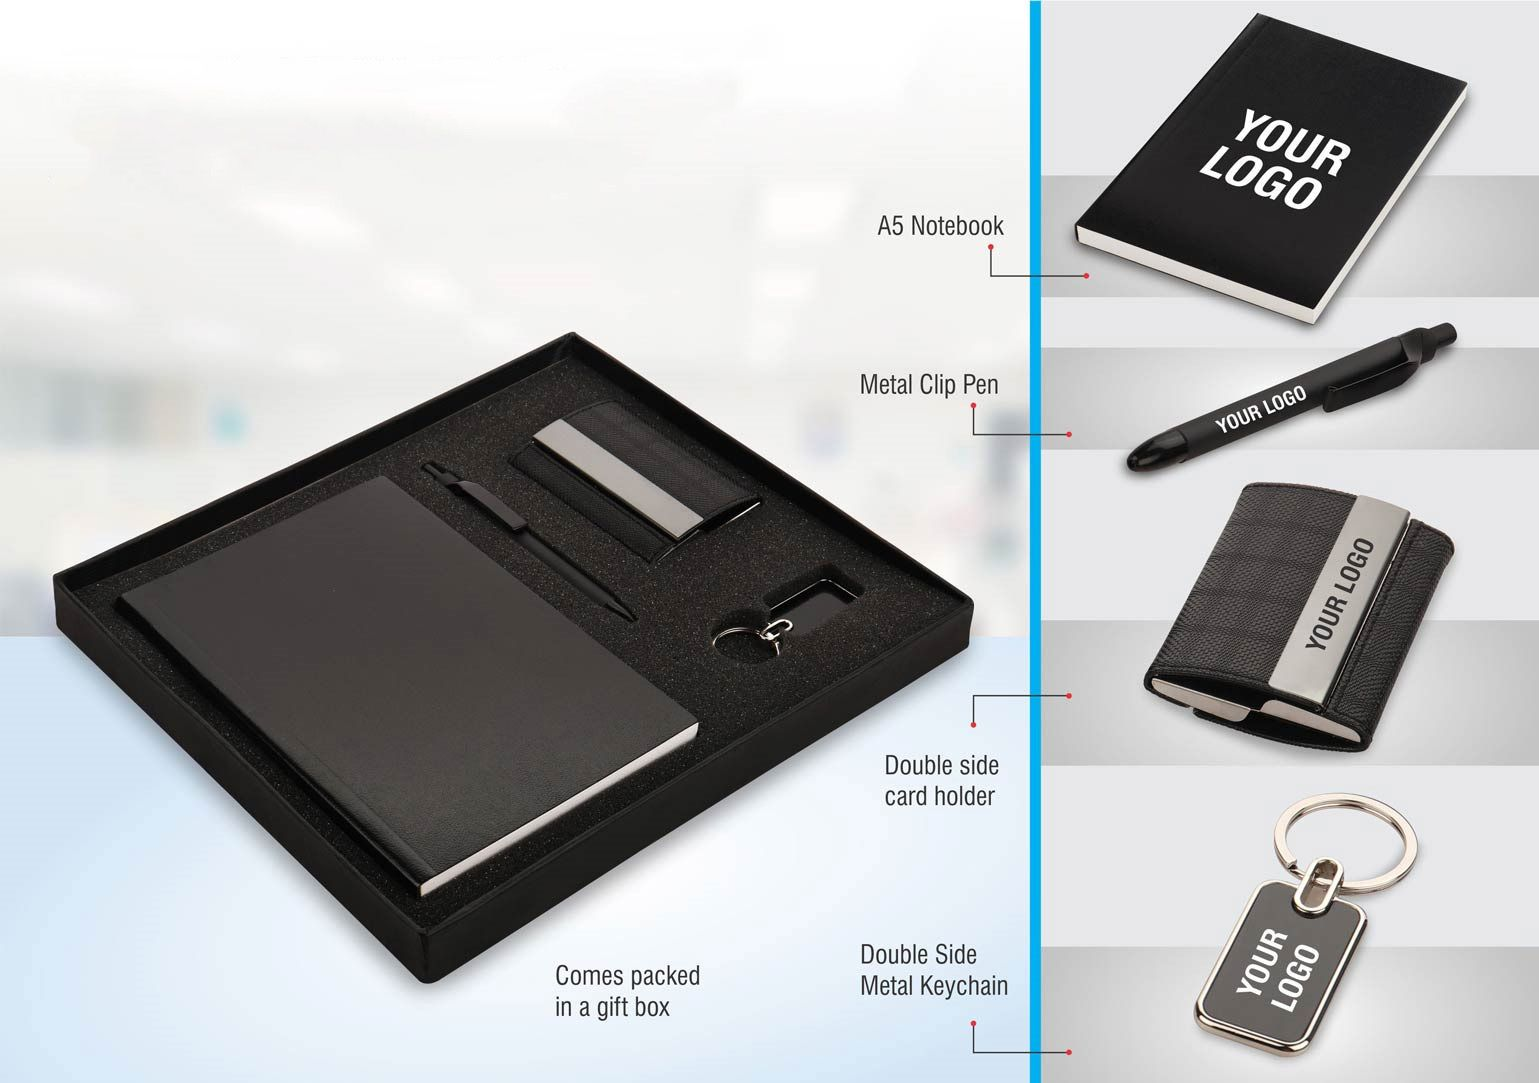 Power Plus Set Of 4: Double Side Visiting Card Holder With A5 Notebook, Double Side Metal Keychain And Metal Clip Pen In Gift Box Q33 Black